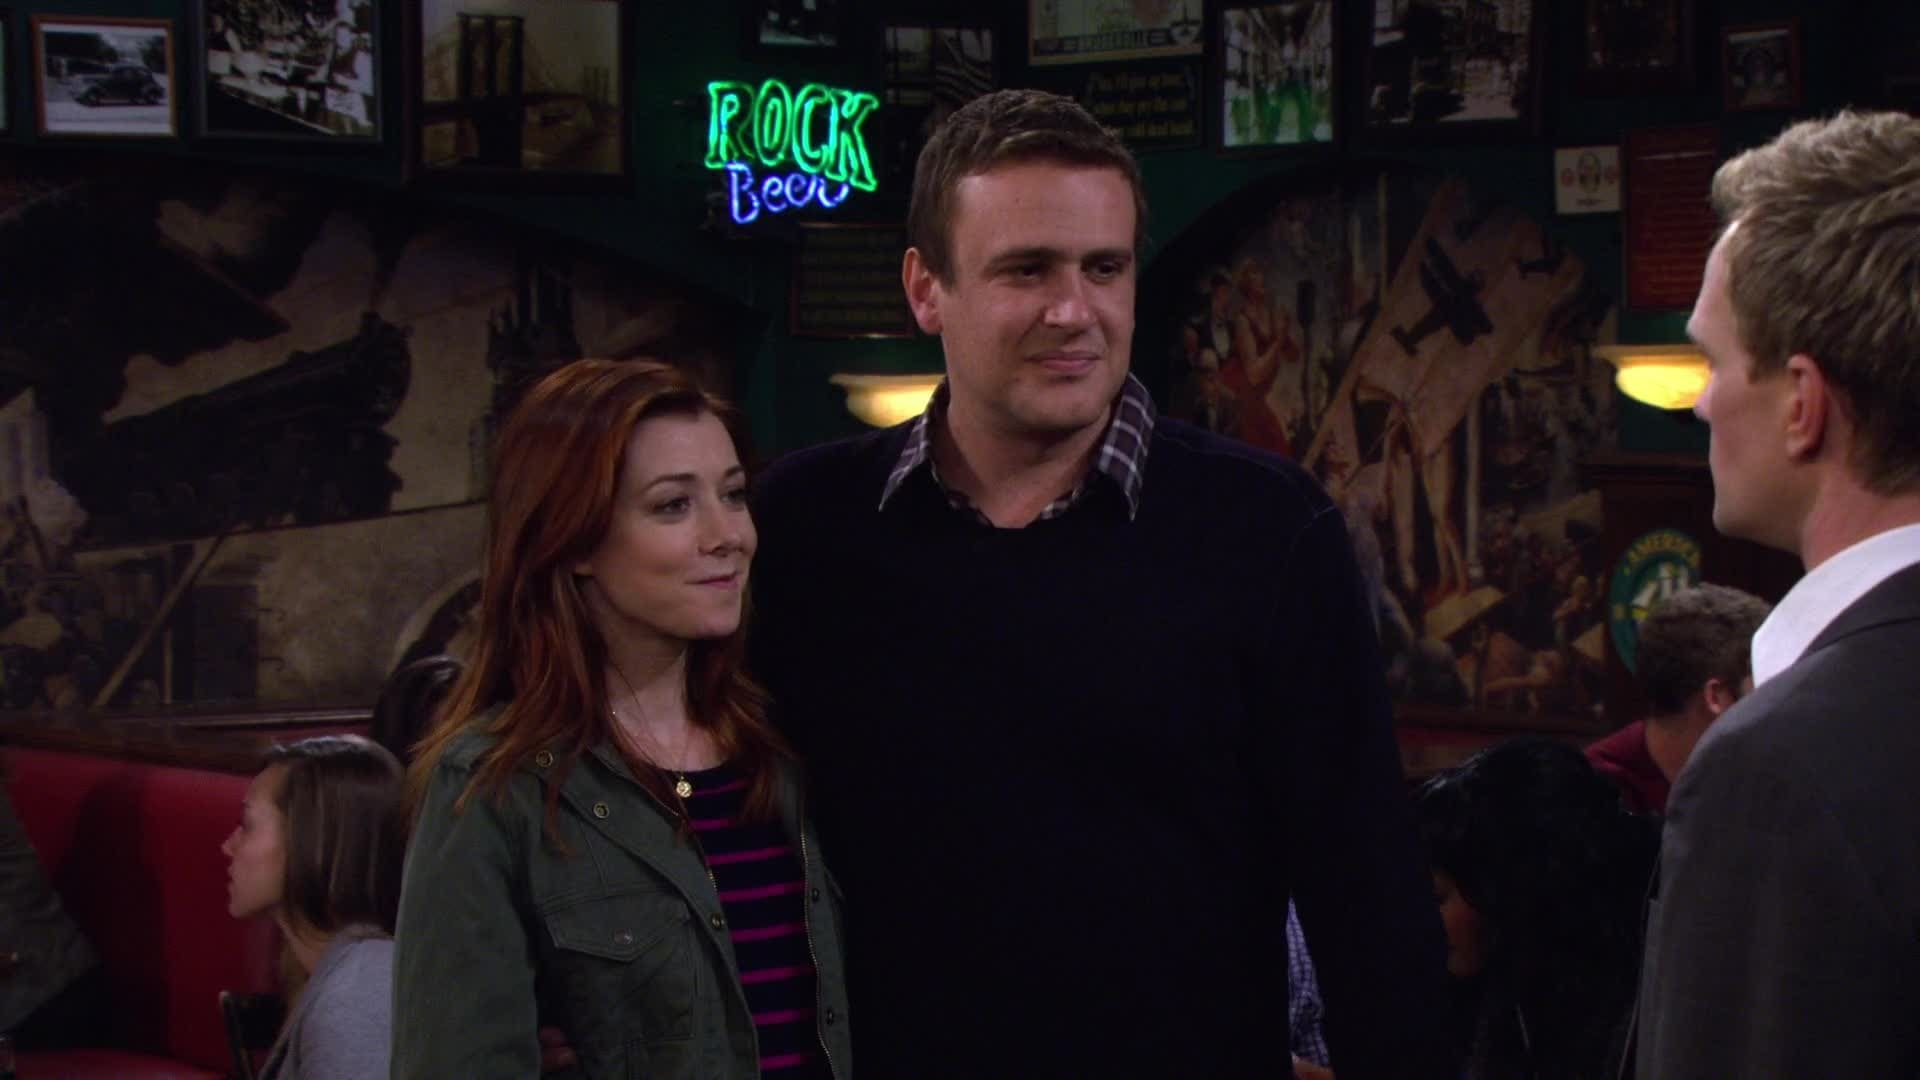 Watch How I Met Your Mother Online - Full Episodes - All ...